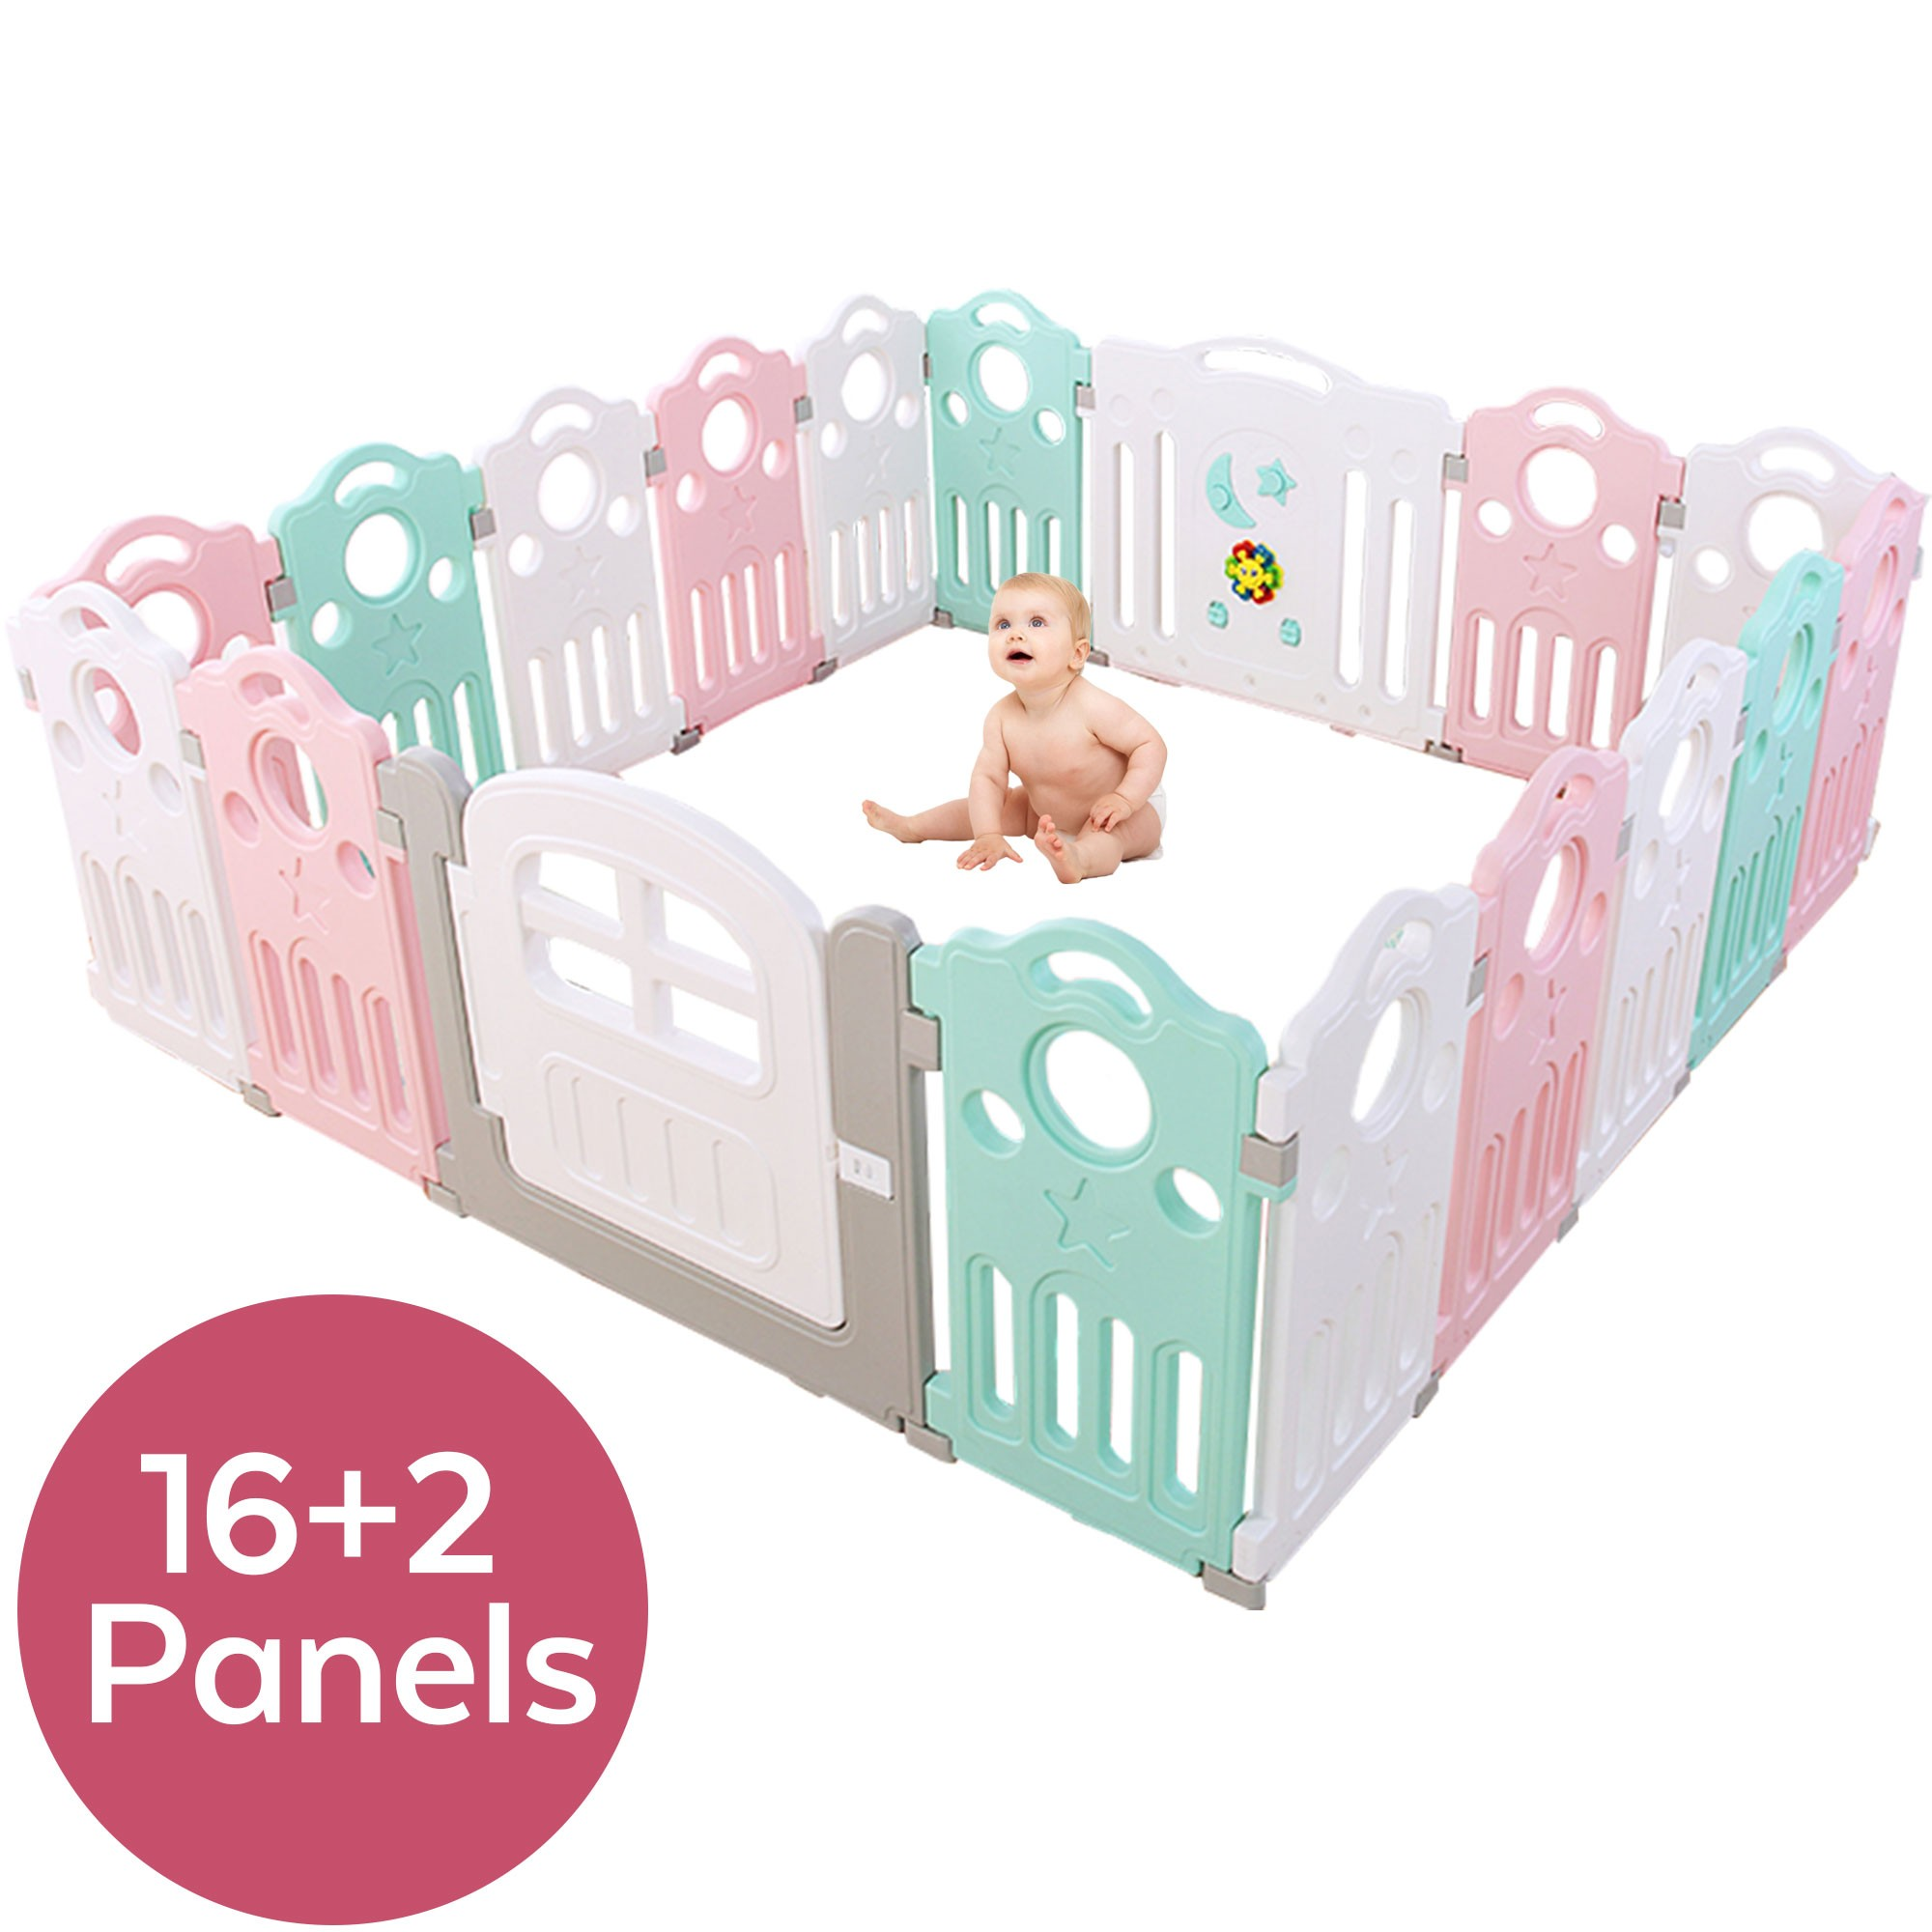 Durable and Breathable Non-Toxic Folding Fence KOOU-playpen Square Indoor and Outdoor Portable Baby Fence Playground Infant Crawling Safety Fence